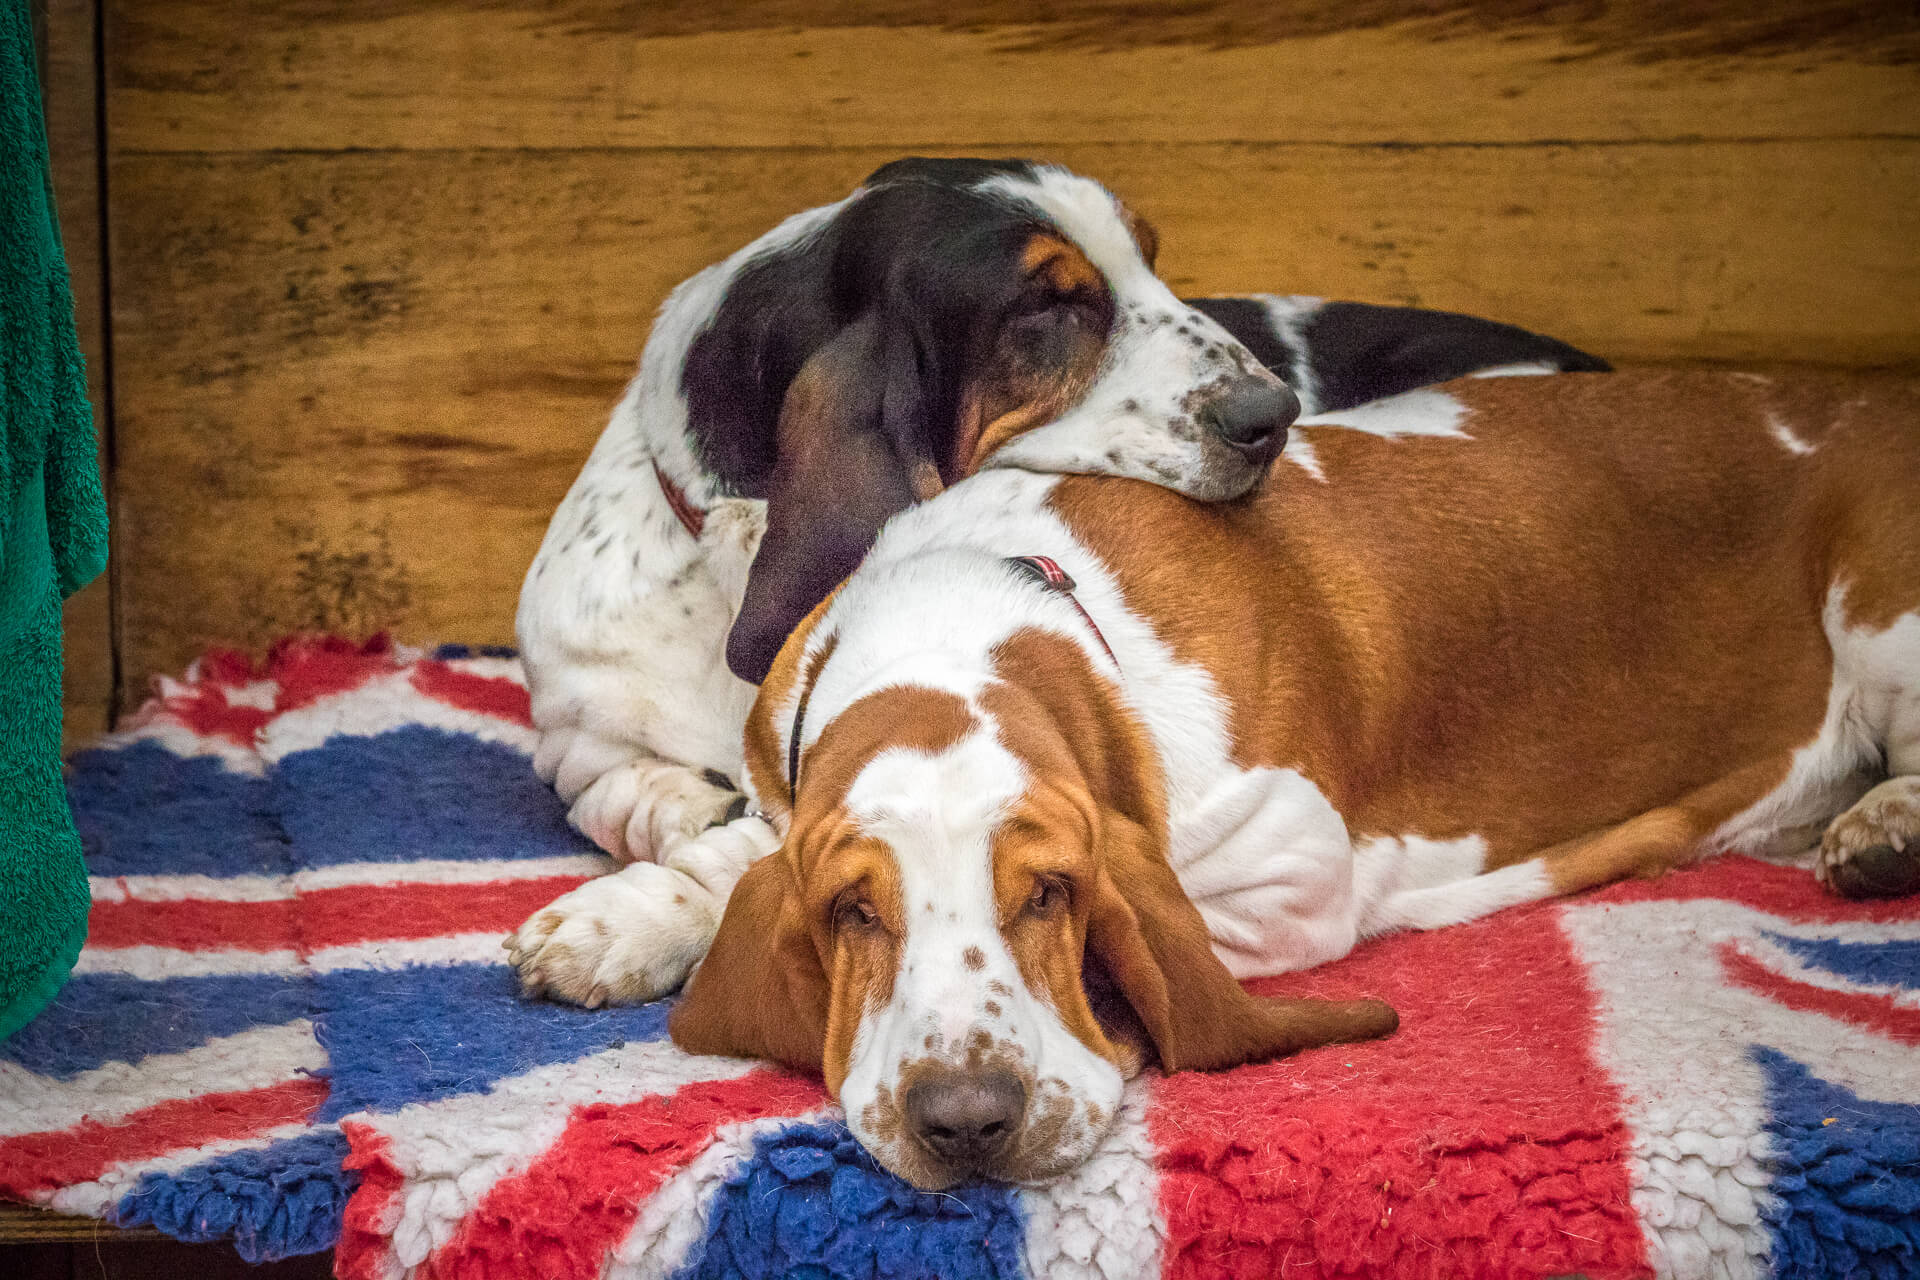 Two Basset Hounds lay sleeping on a Union Jack rug in a show crate. One is Liver and white, and the other is Black & White. The Black & White one has its head resting on the others back.